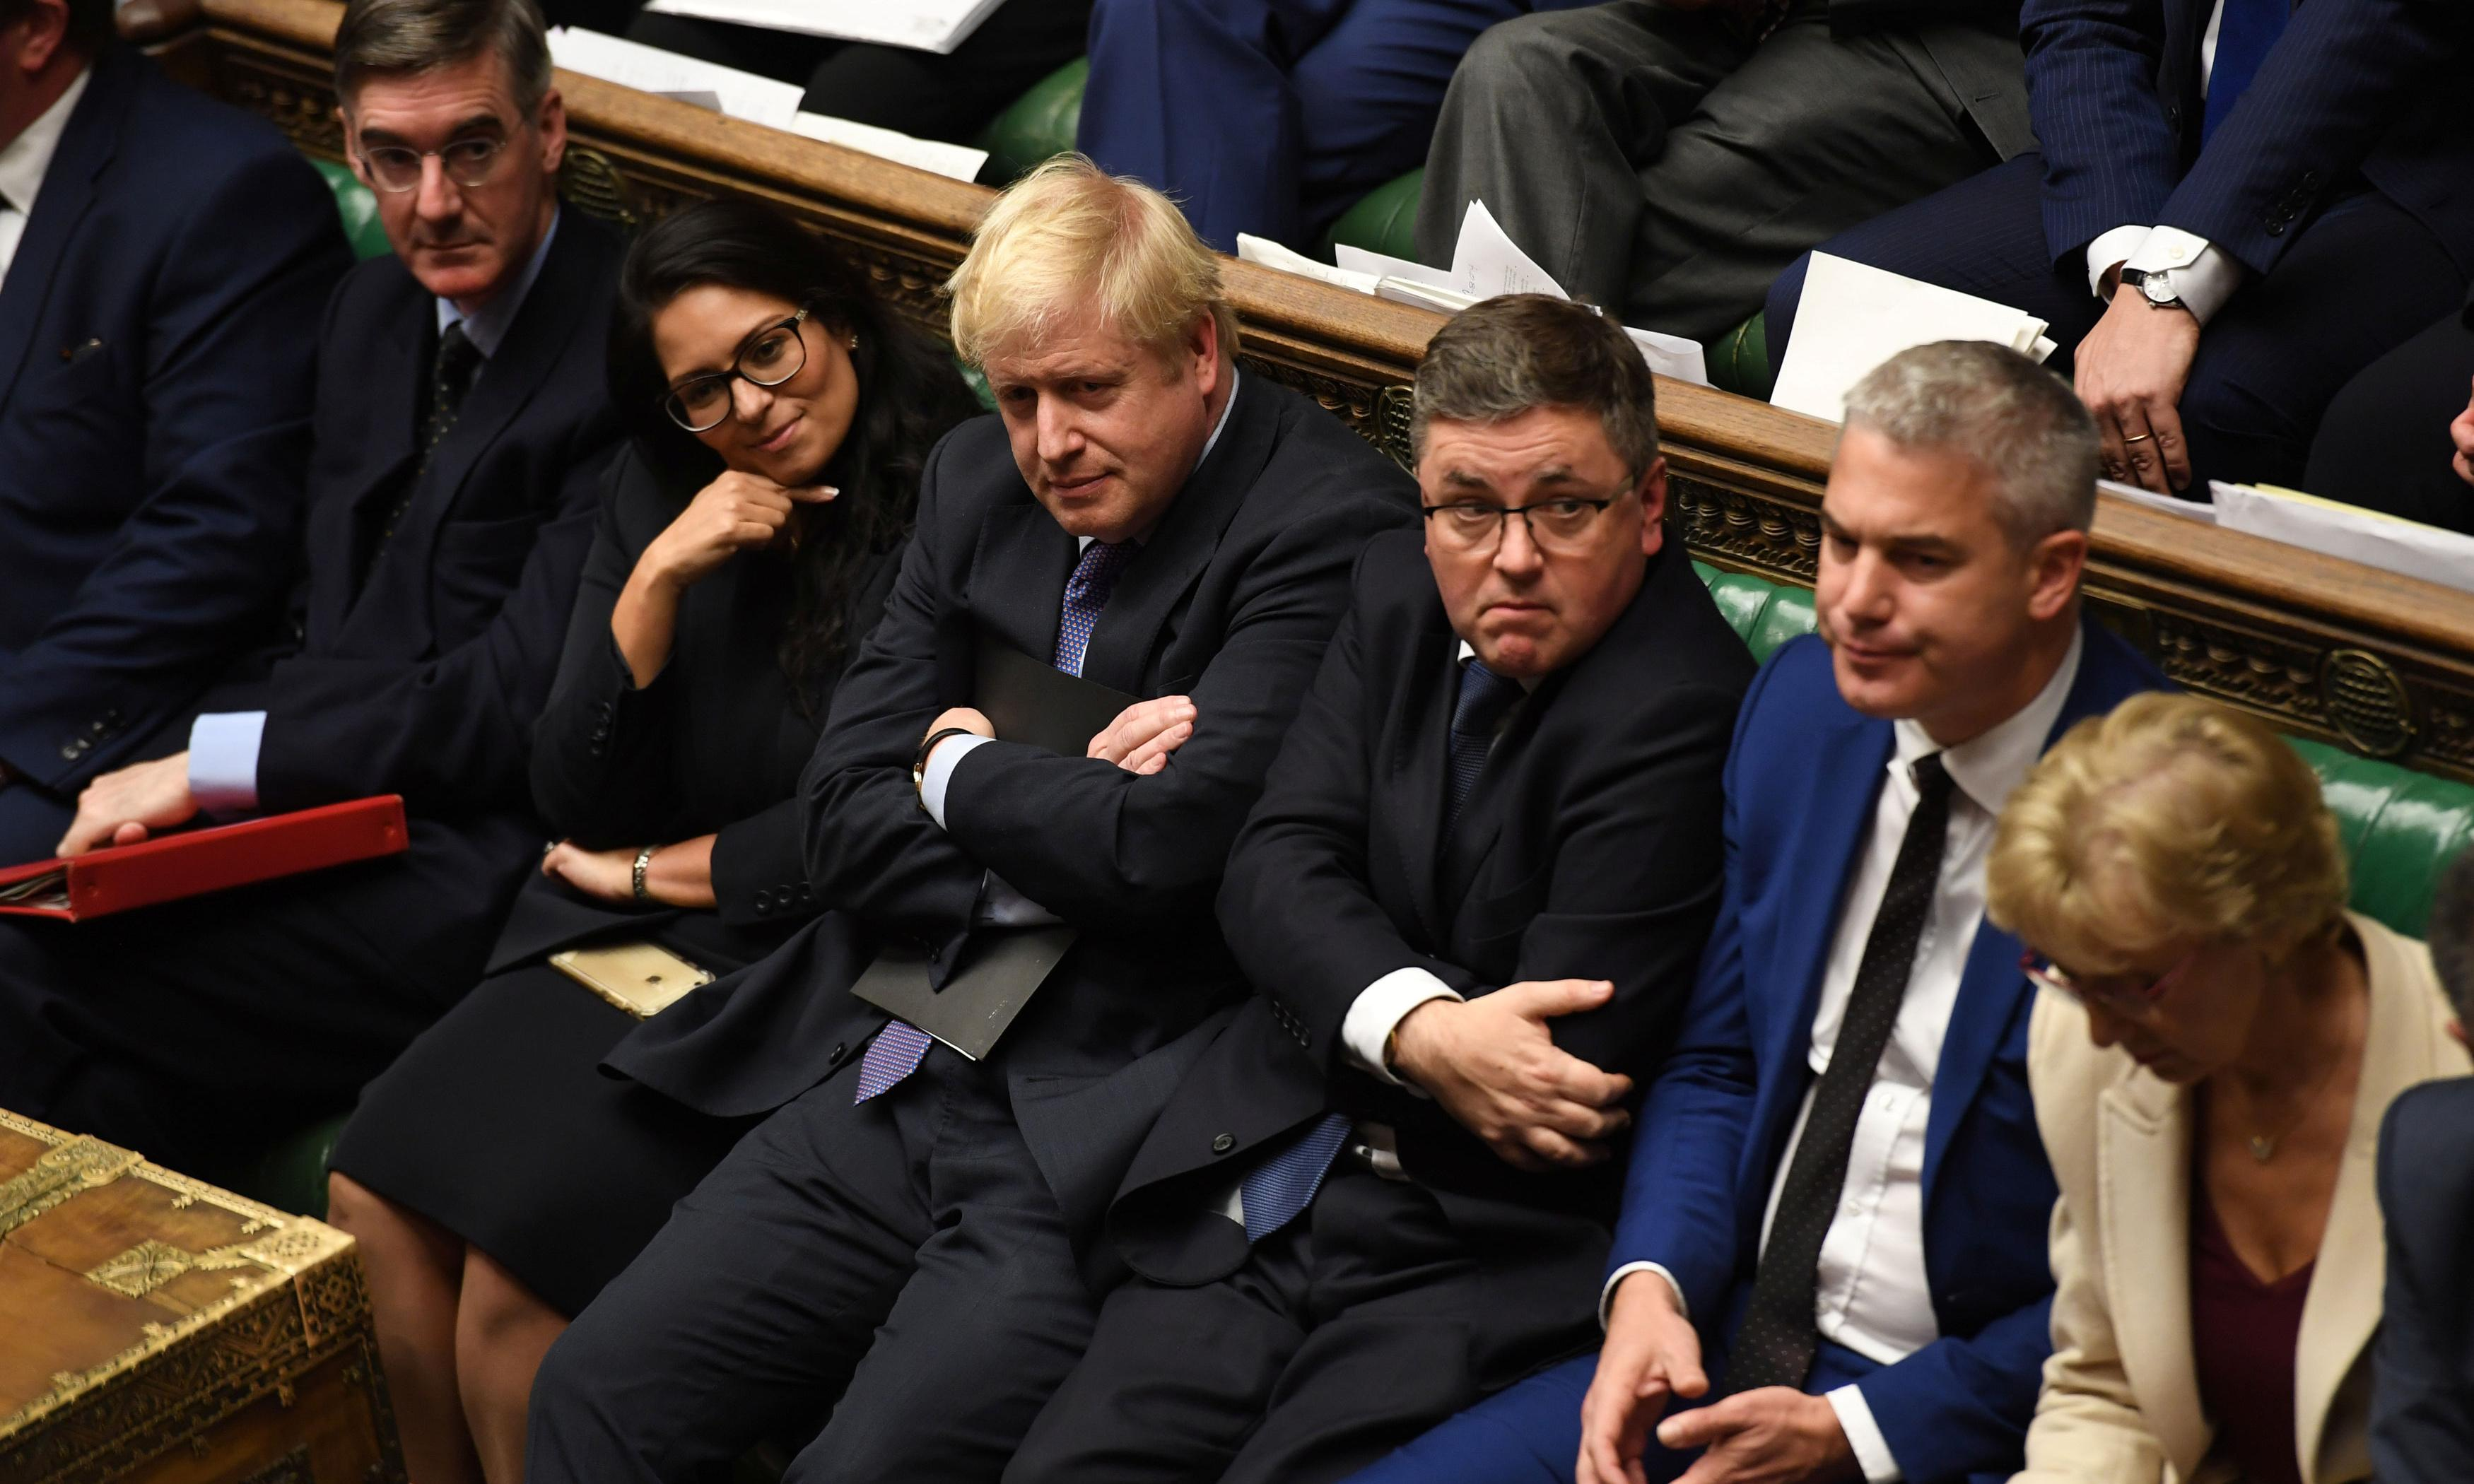 Don't buy the hype: Boris Johnson's Brexit deal did not win approval